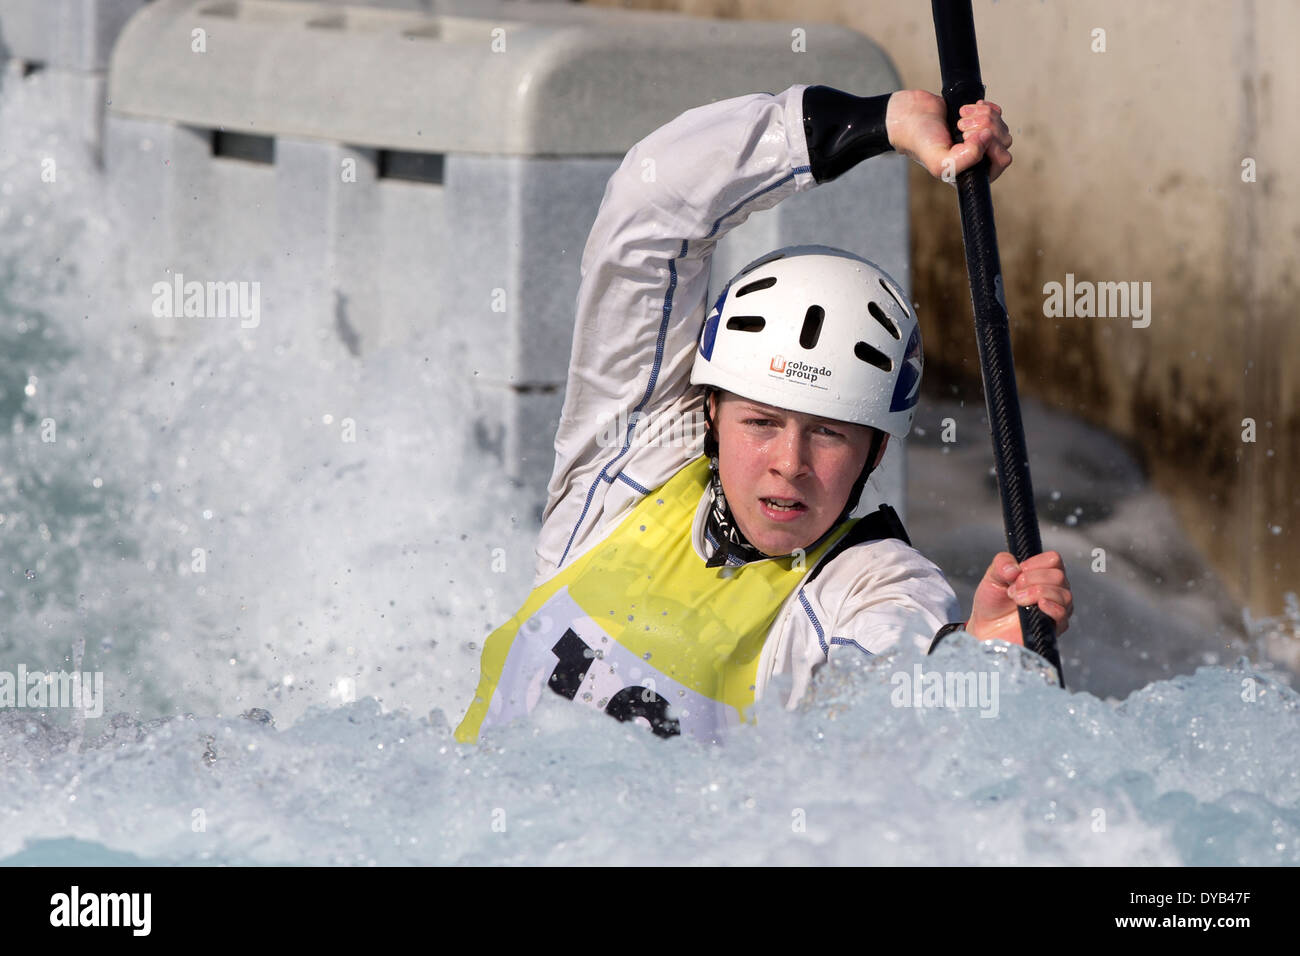 Louise REVELL, B Final K1 Women's GB Canoe Slalom 2014 Selection Trials Lee Valley White Water Centre, London, UK - Stock Image